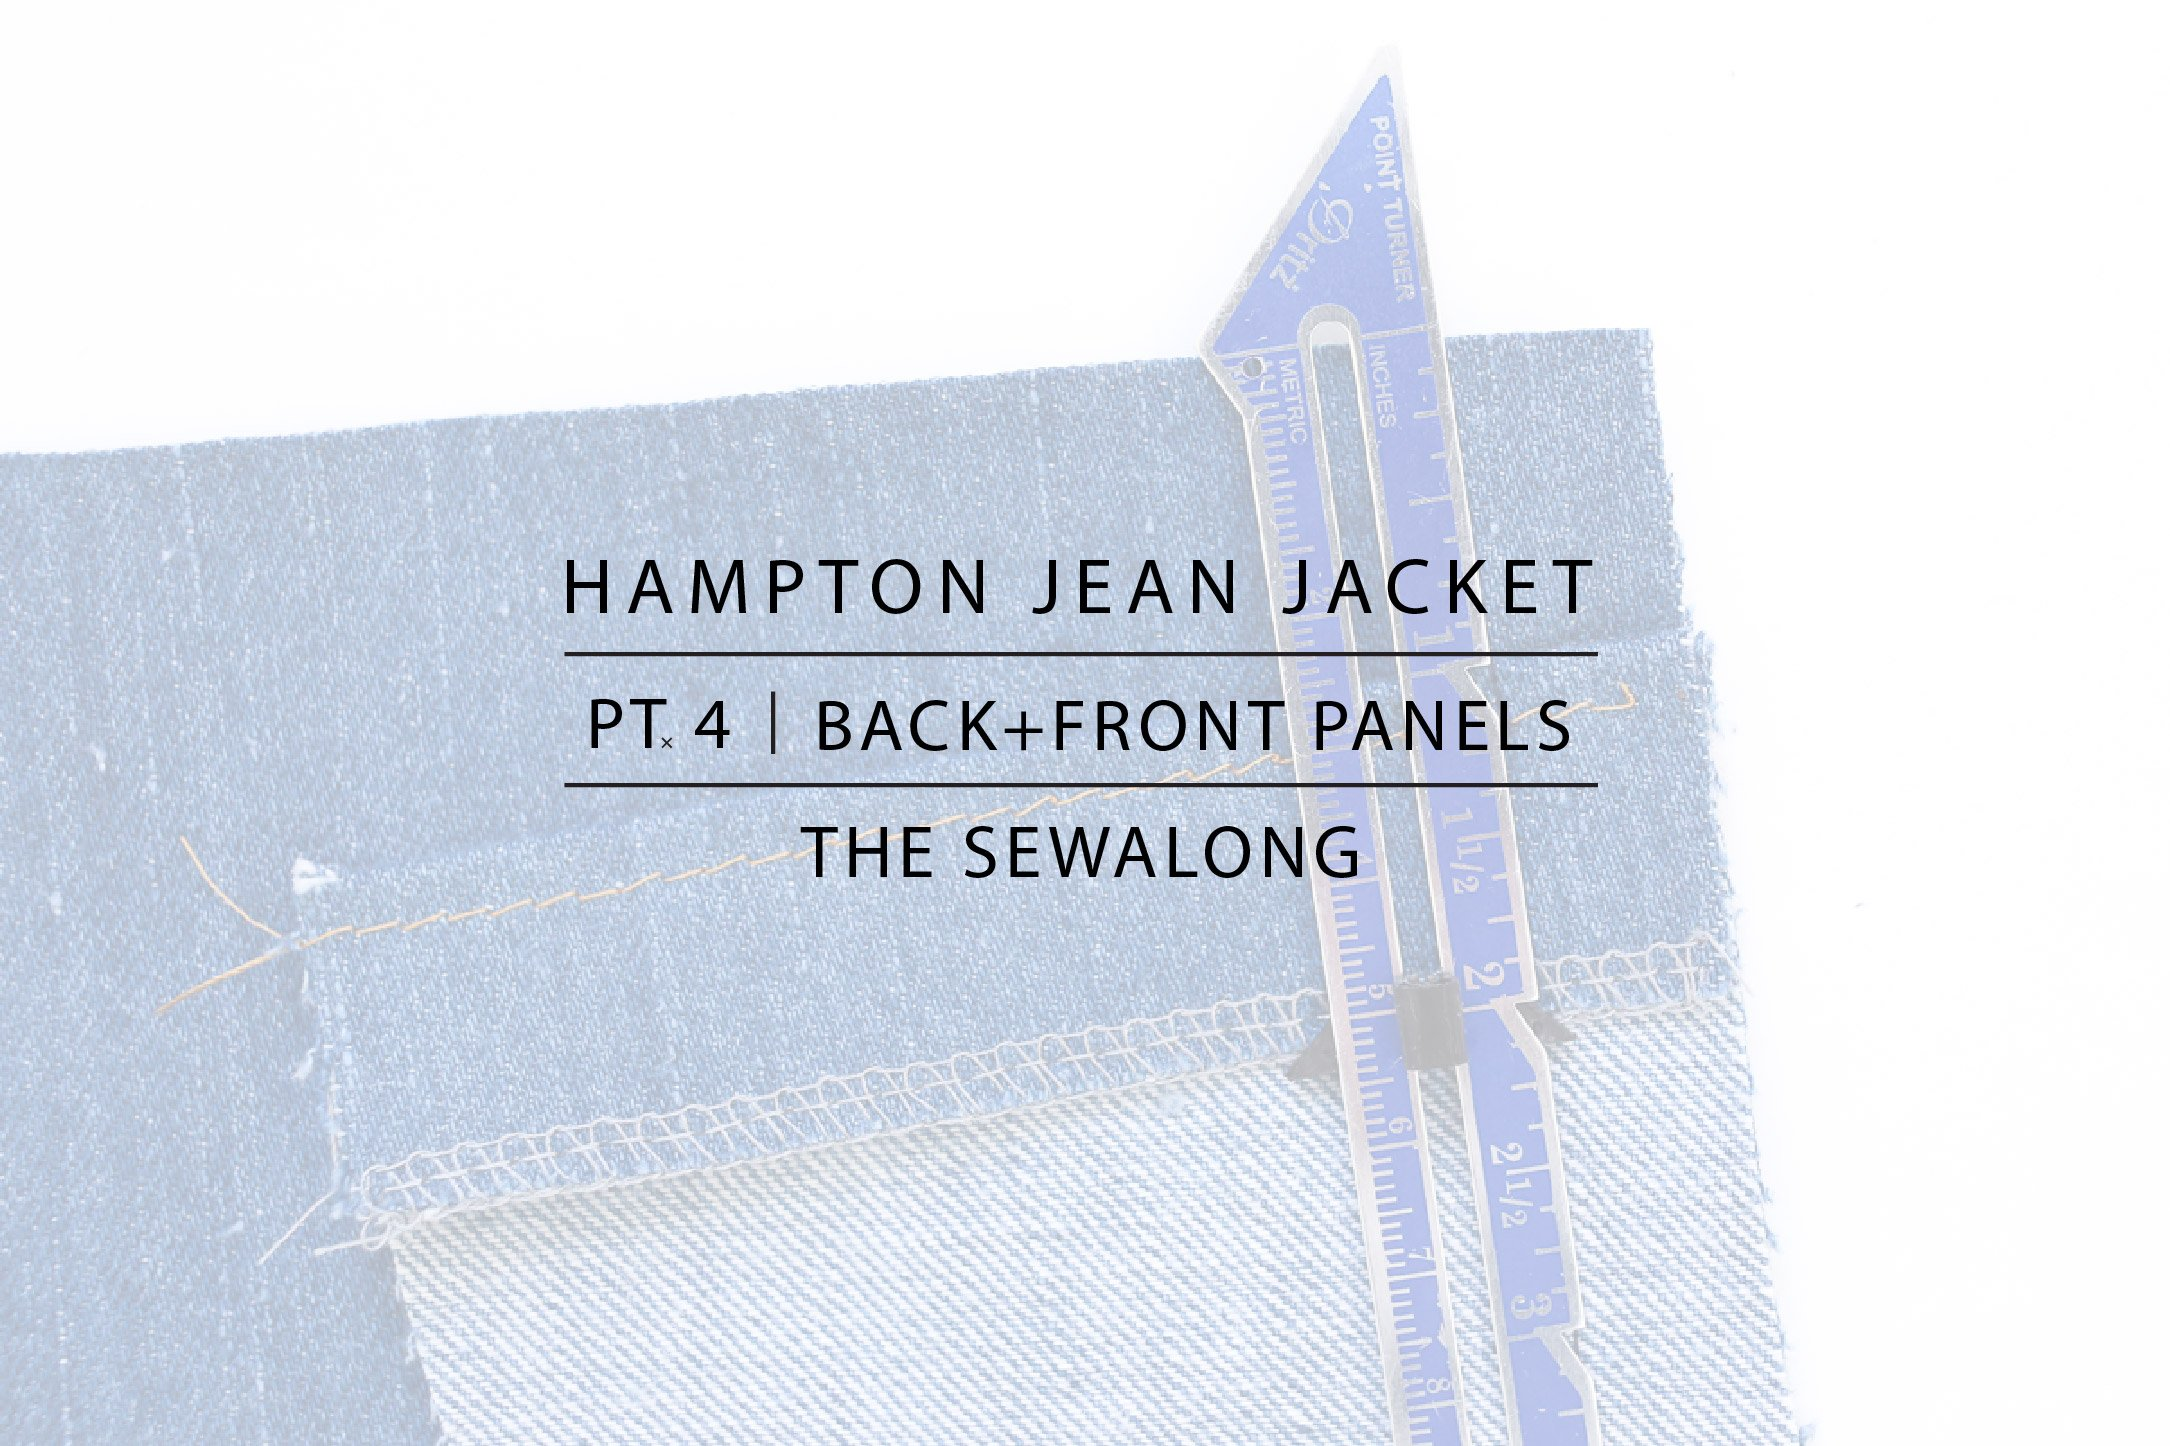 Hampton Jean Jacket Sewalong Pt. 4